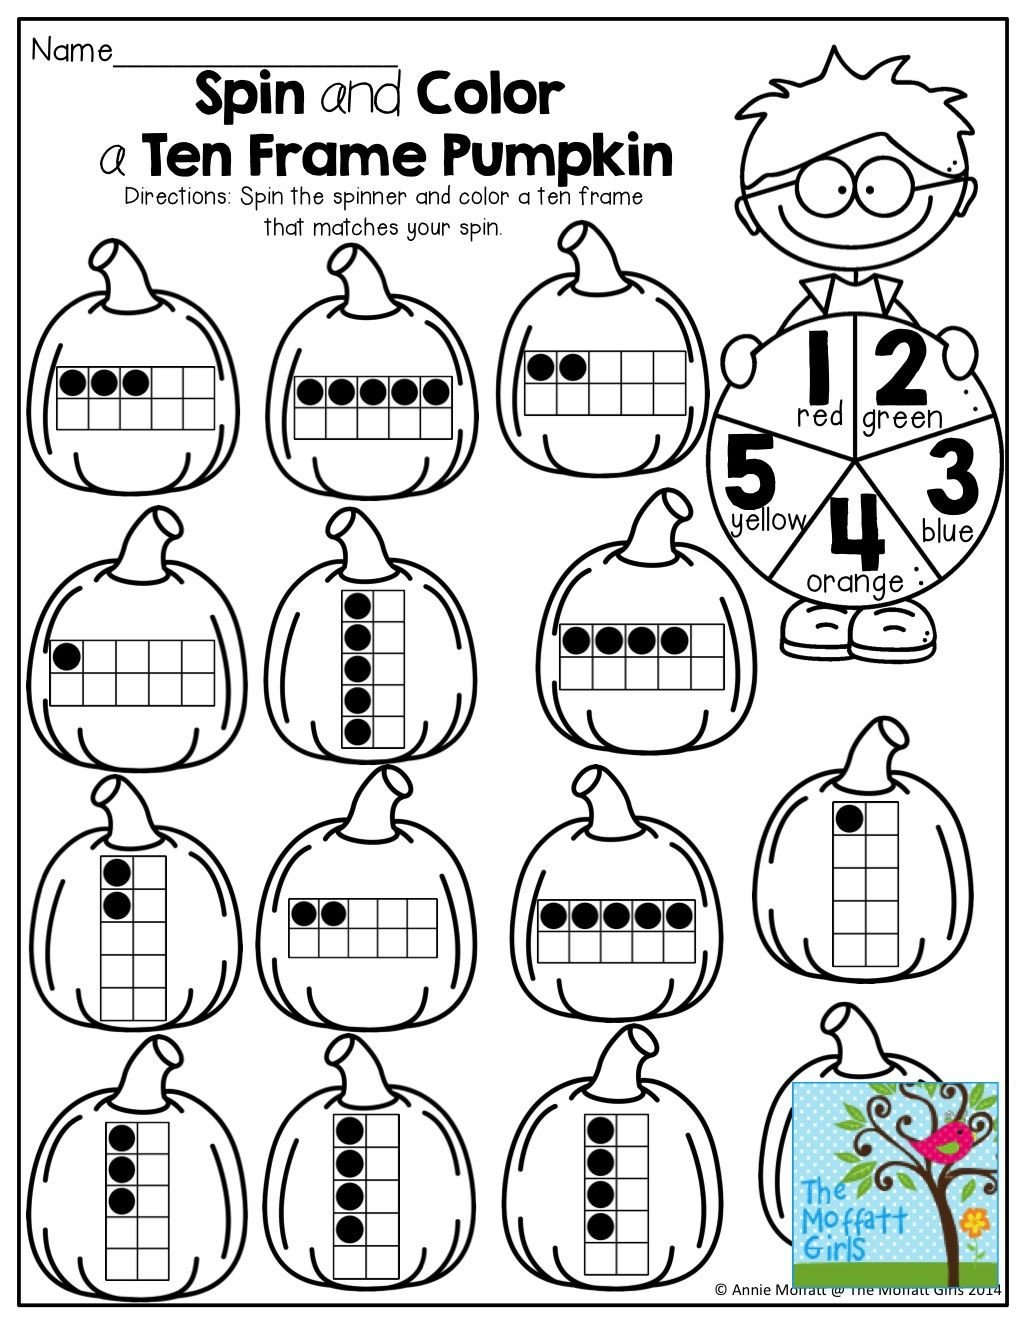 Kindergarten Ten Frame Worksheets Spin and Color A Ten Frame Use A Paperclip Spinner to Spin